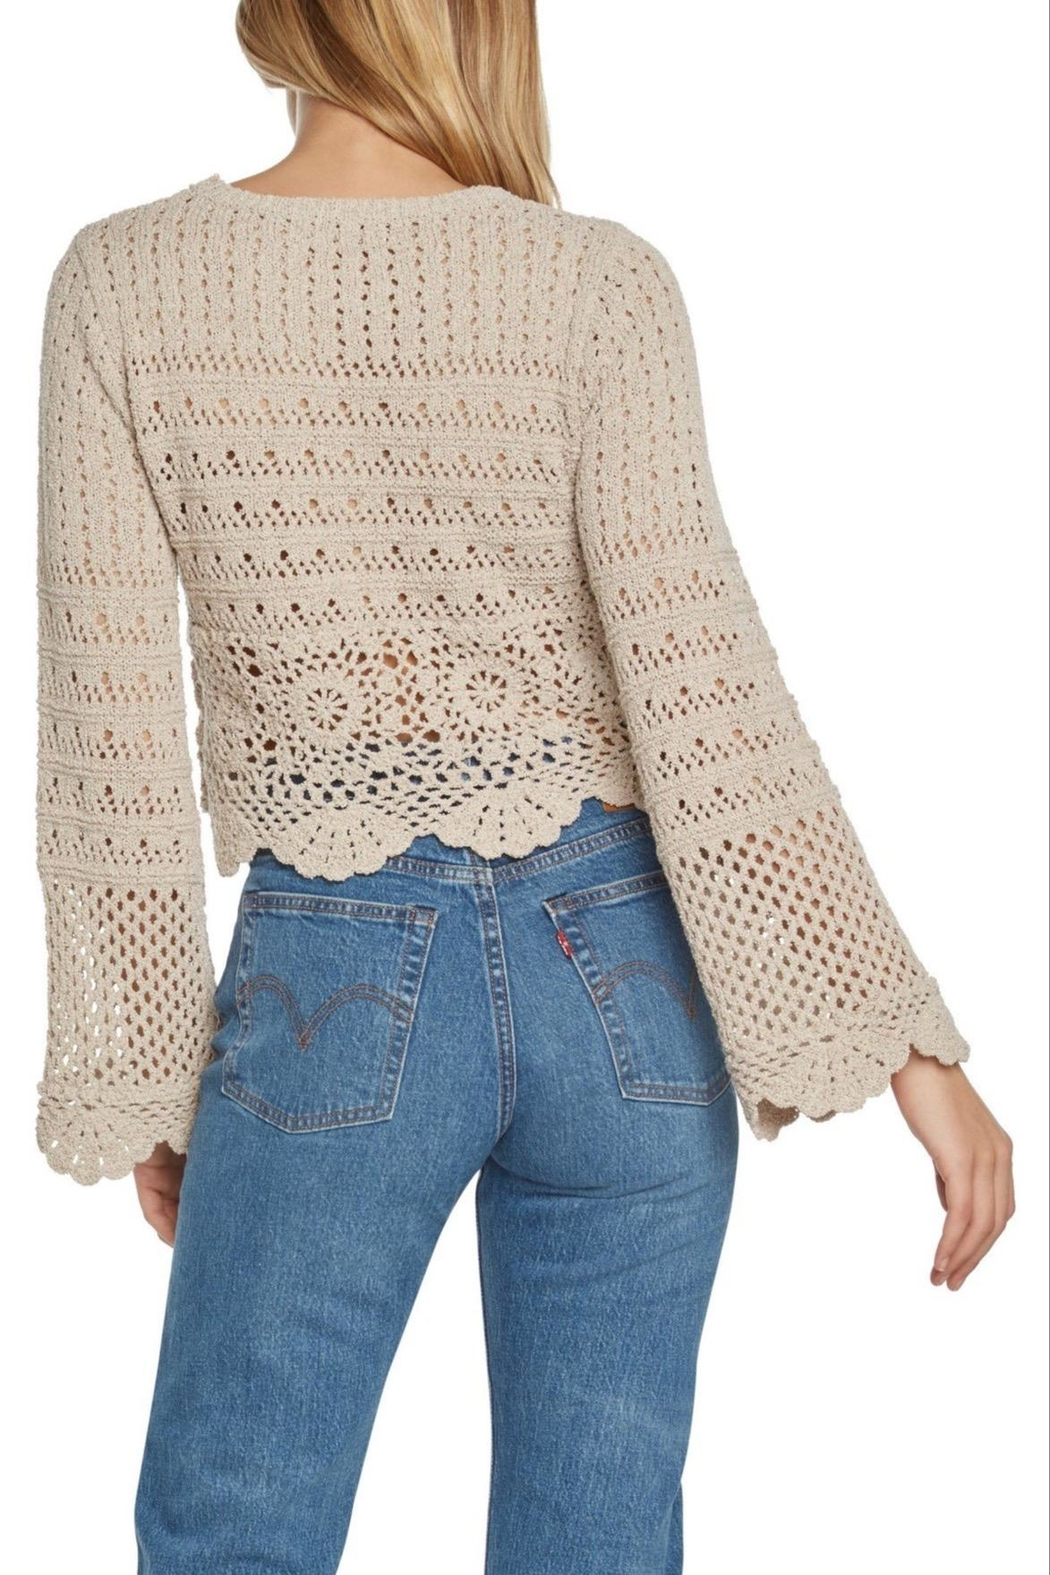 Willow & Clay Soleil Crochet Sweater - Front Full Image